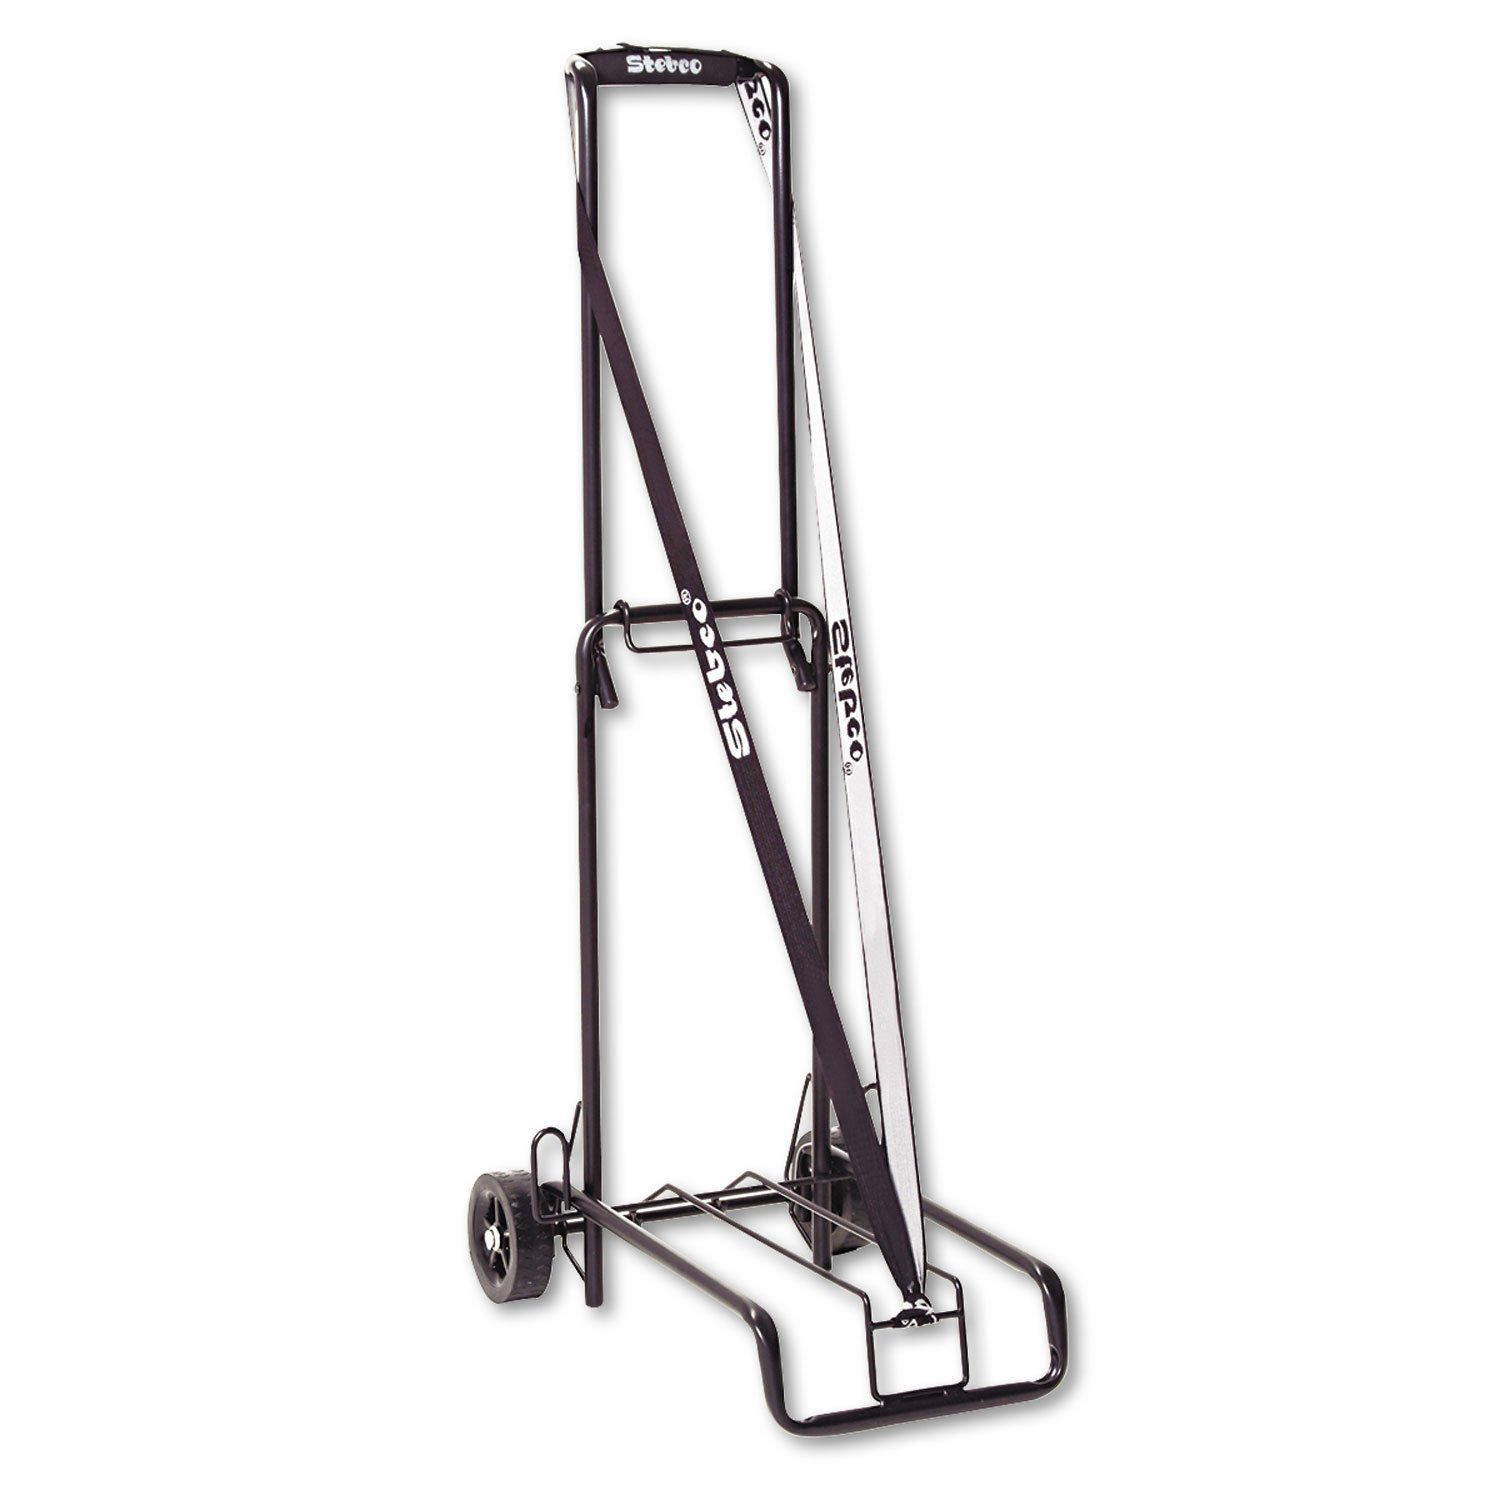 STEBCO Luggage Cart Bond Street LTD 390002BLK DOBA-STB390002BLK